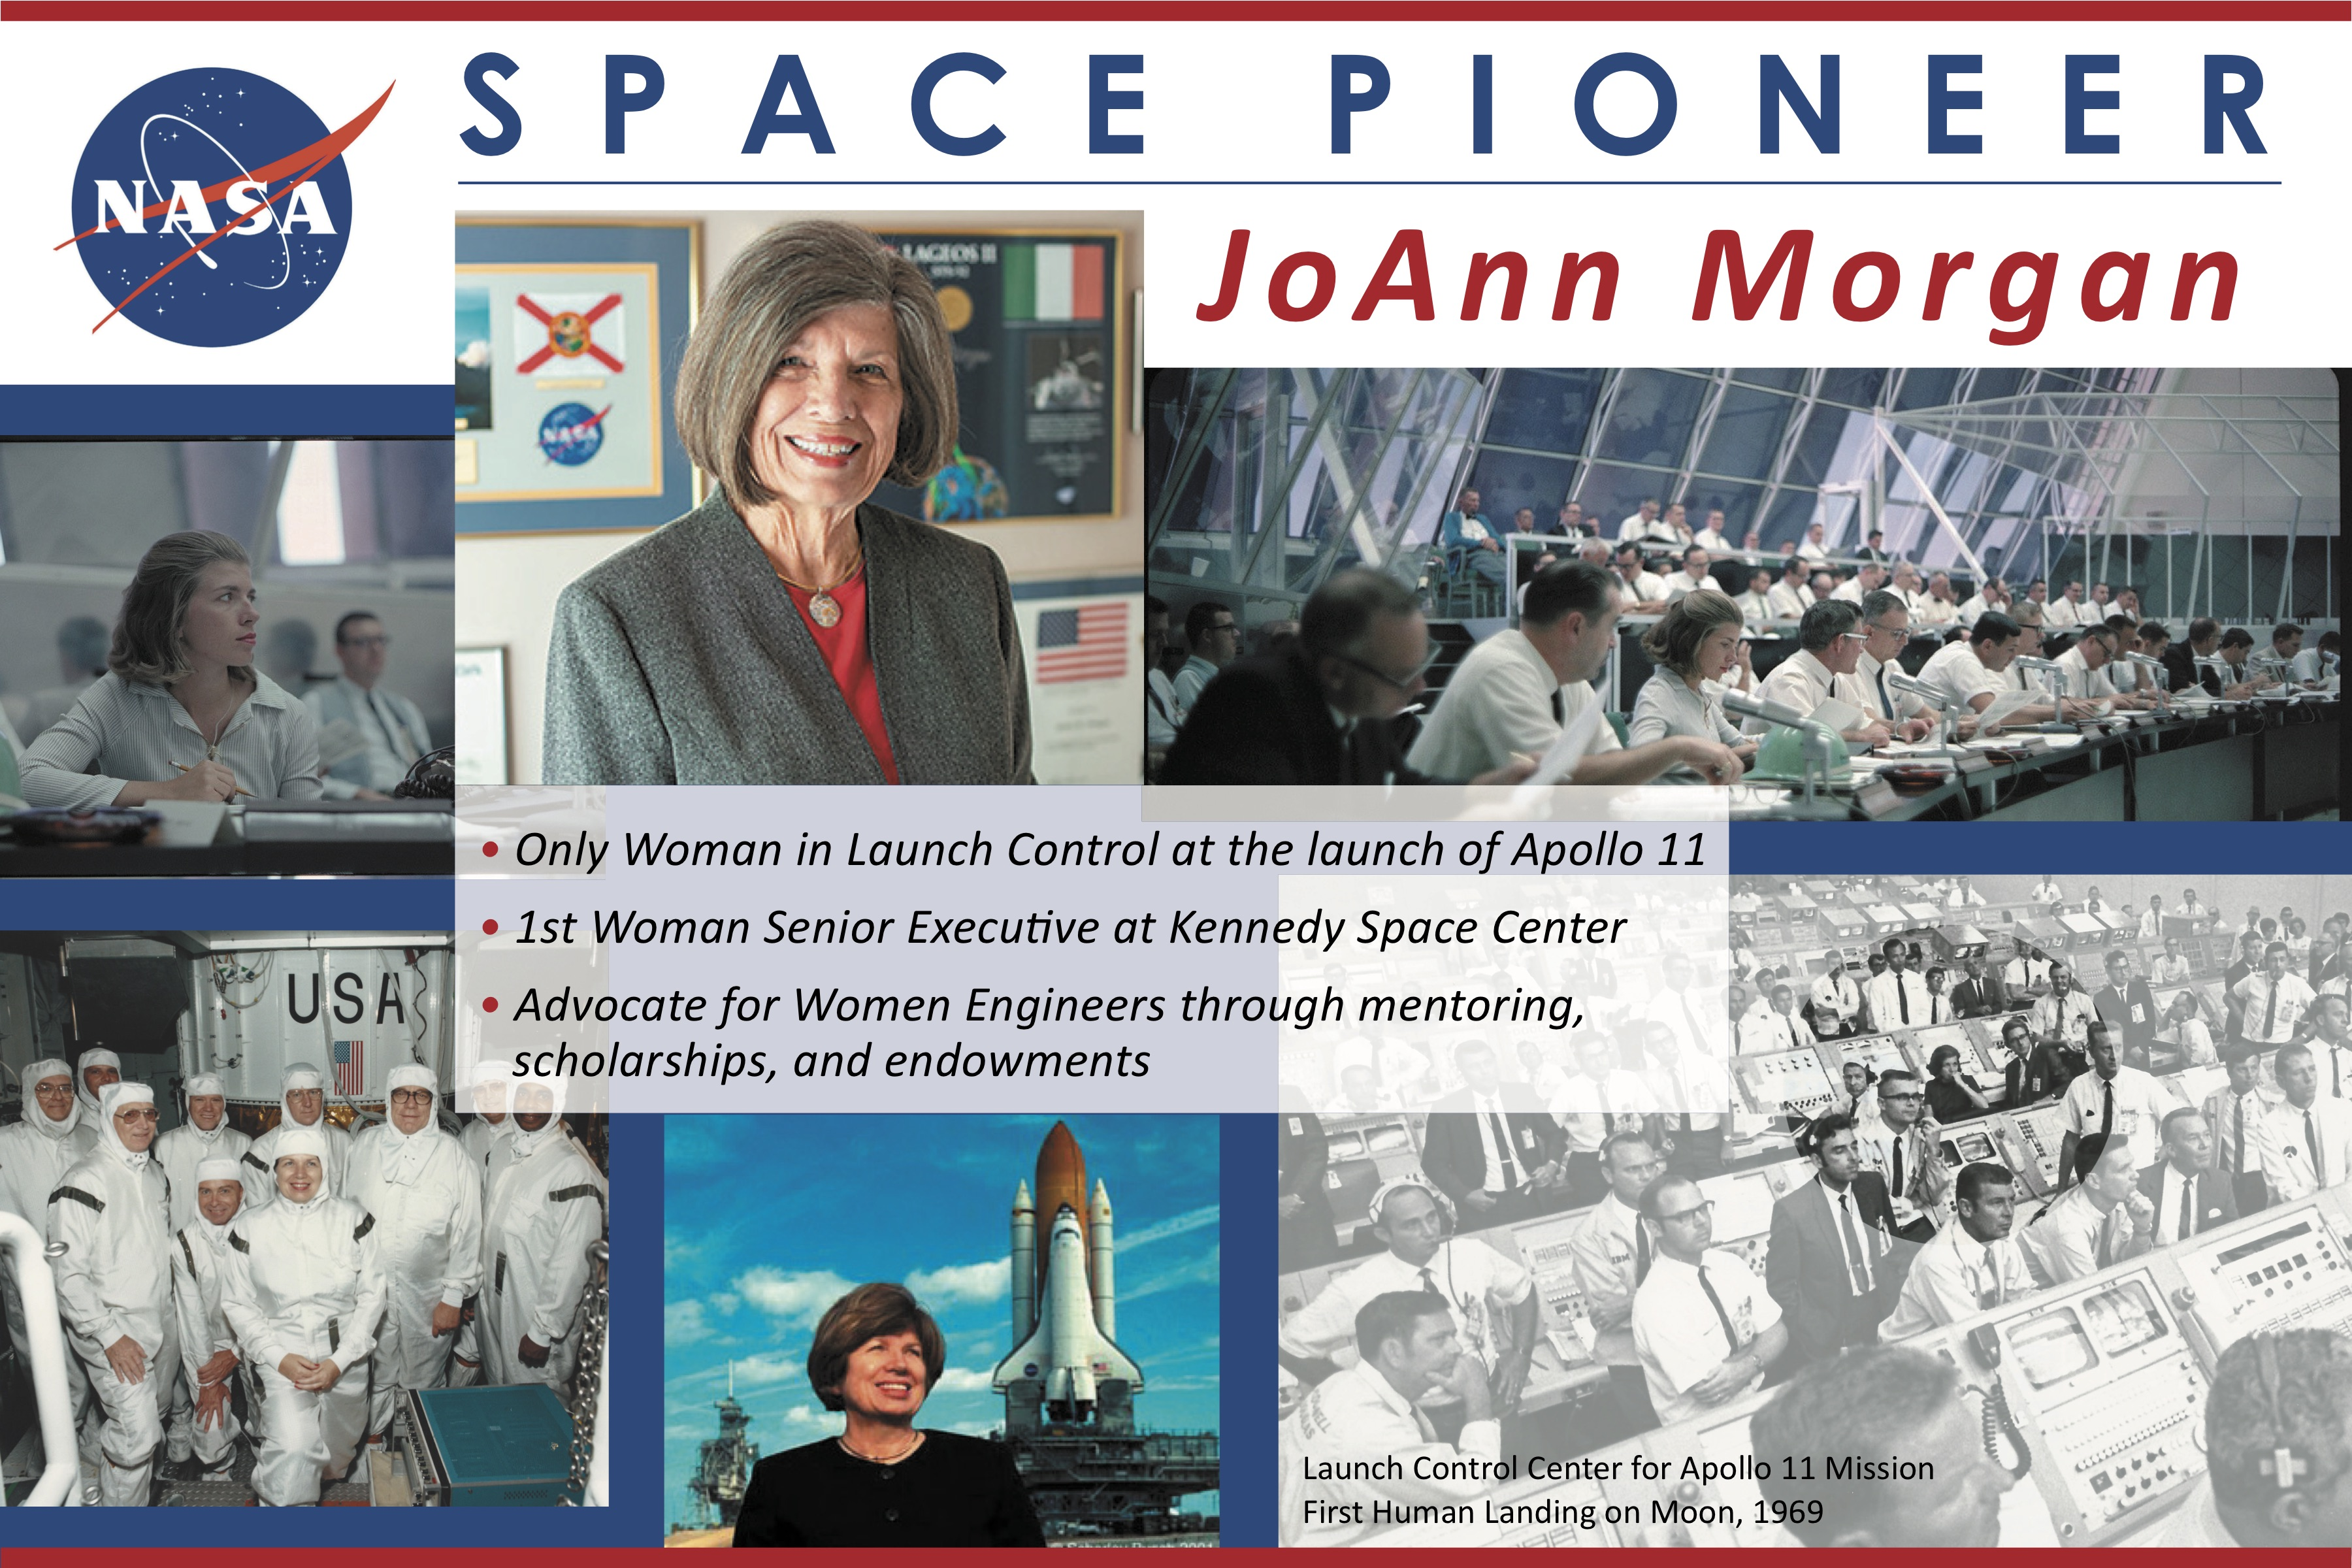 Space pioneer JoAnn Morgan